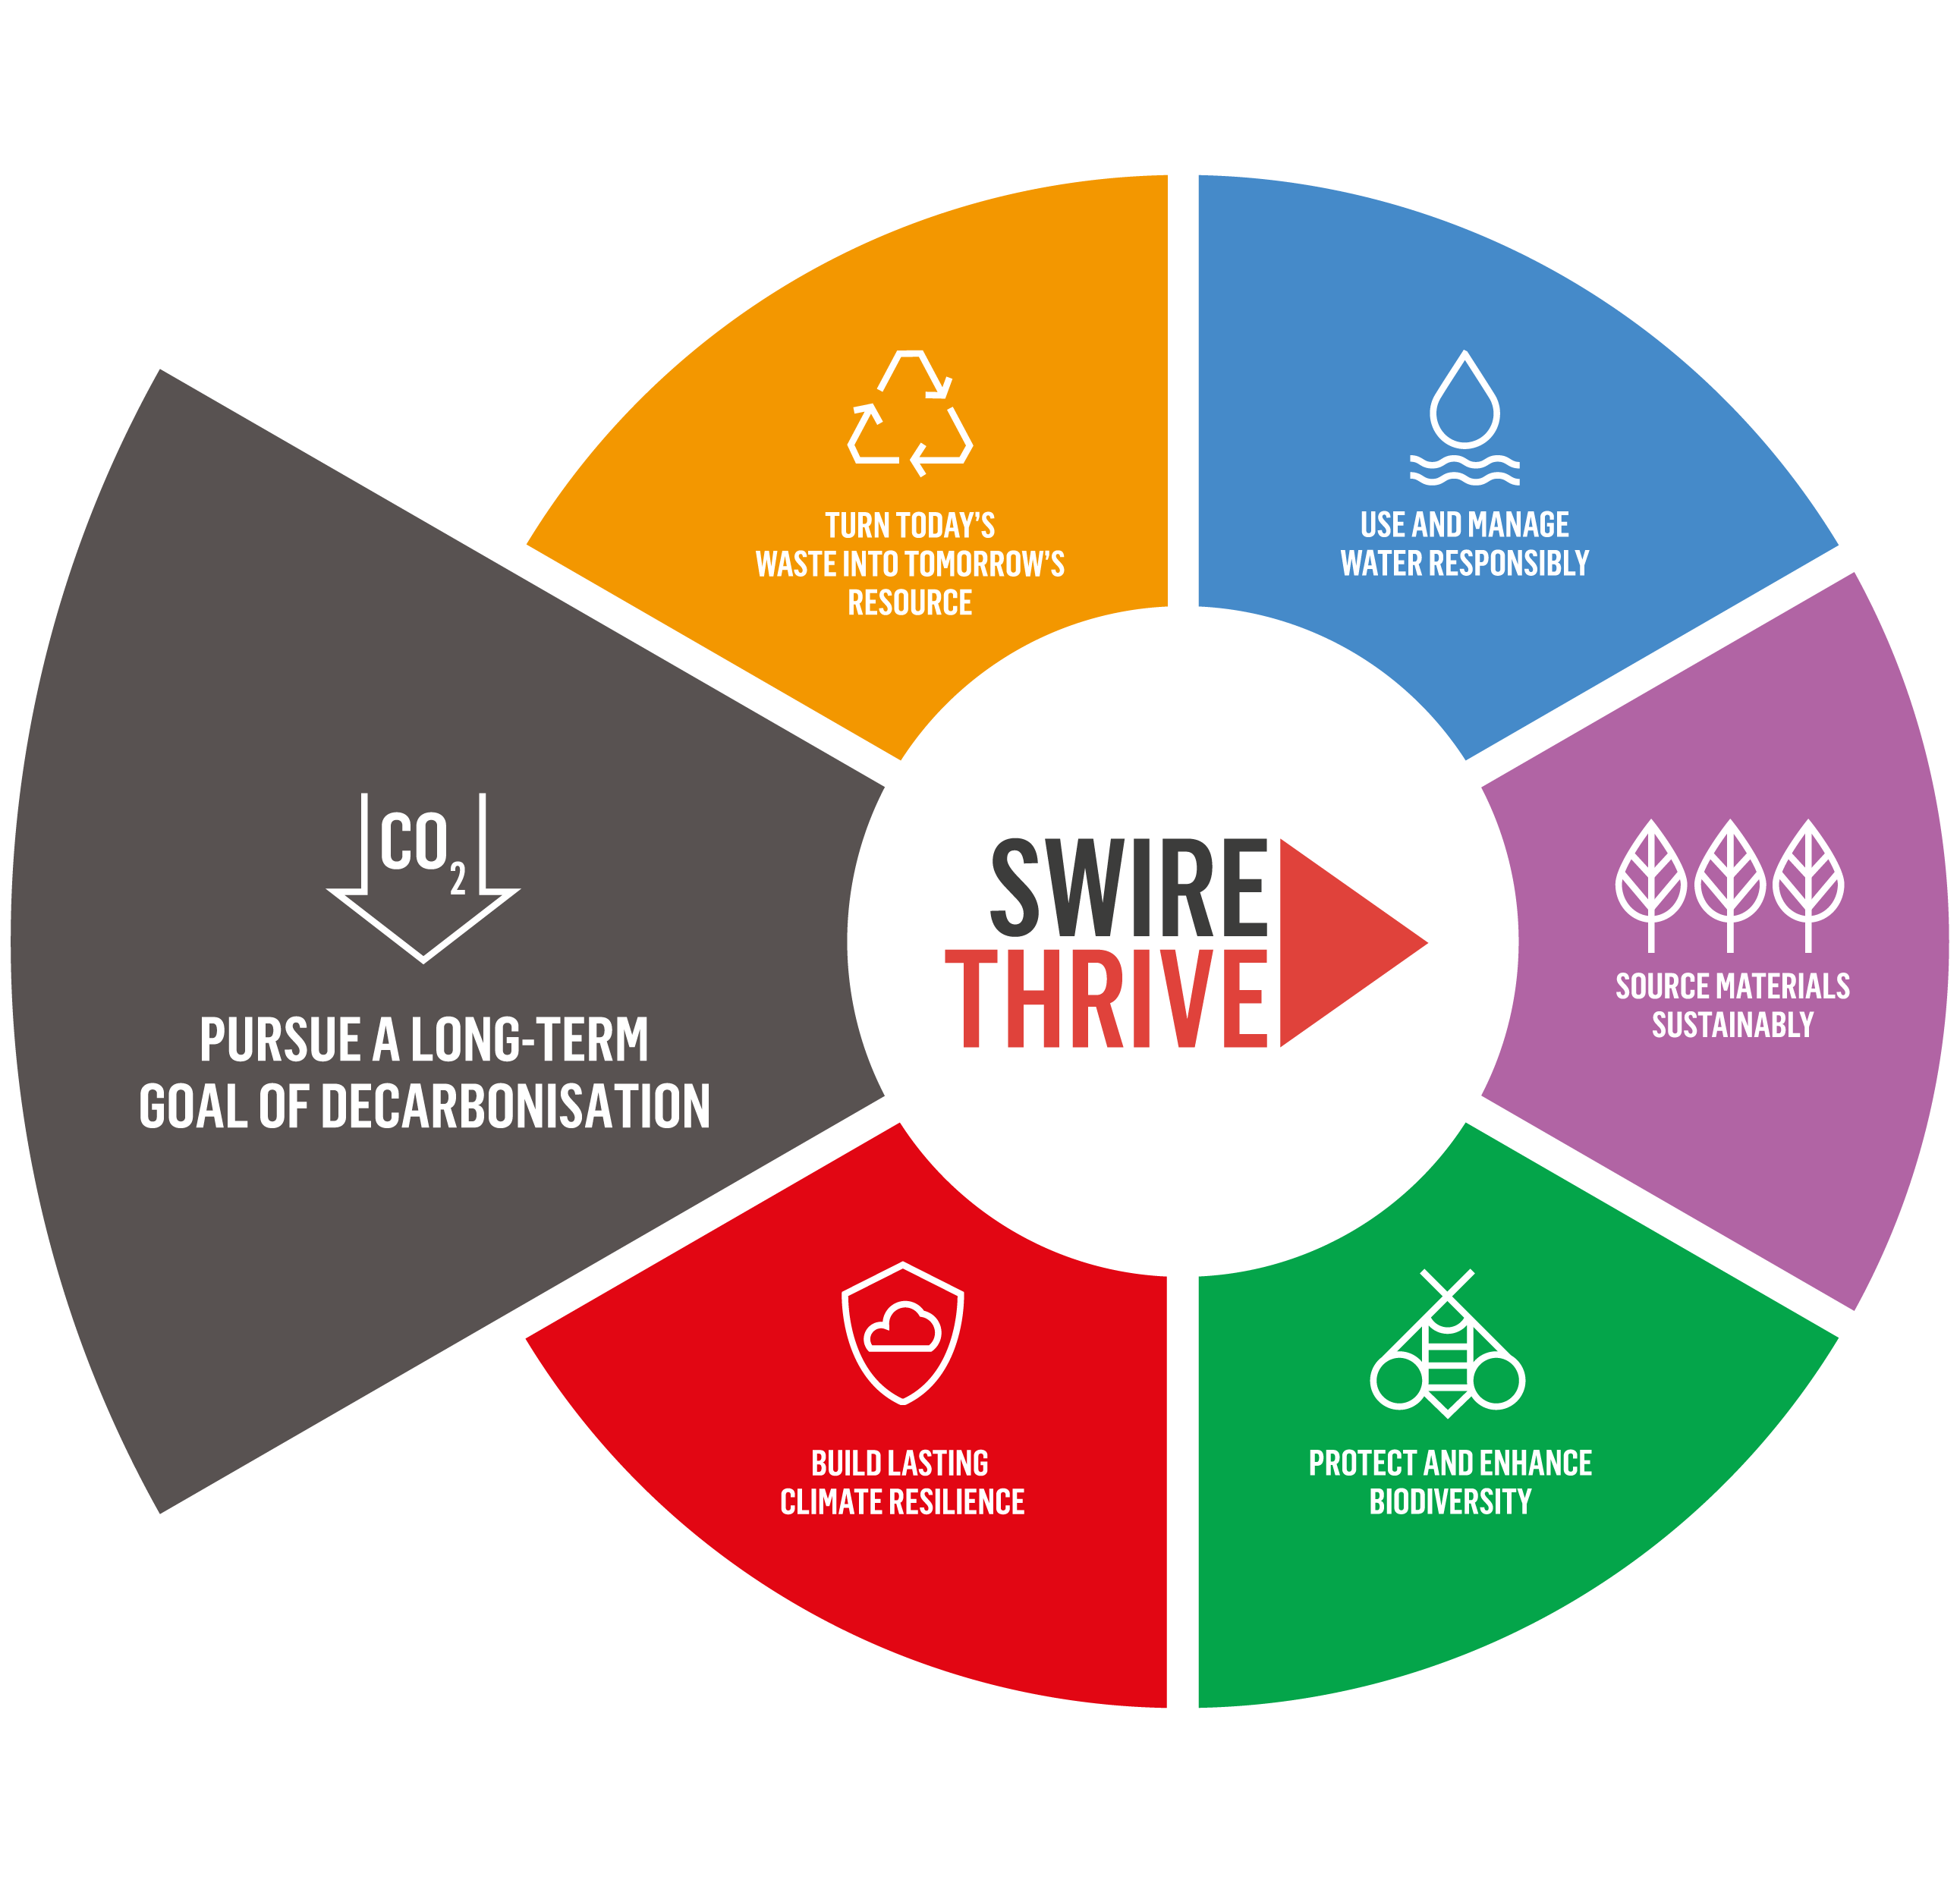 SWIRE THRIVE - Pursue a long-term goal of decarbonisation